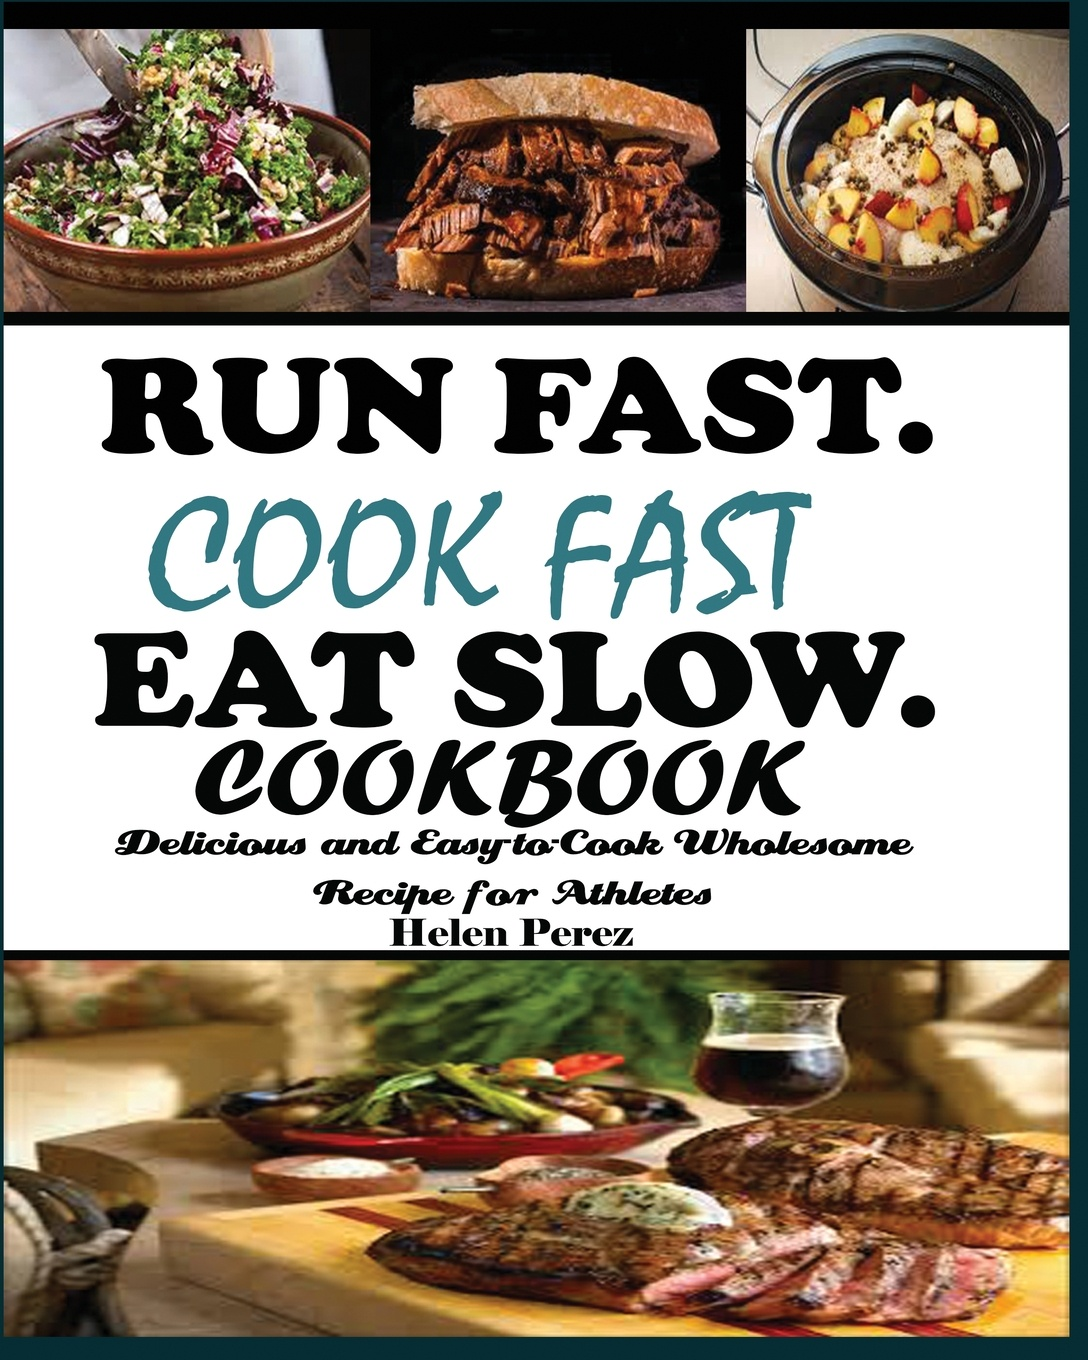 Helen Perez Run Fast. Cook Fast. Eat Slow Cookbook. Delicious and Easy-to-Cook Wholesome Recipe for Athletes thinking fast and slow